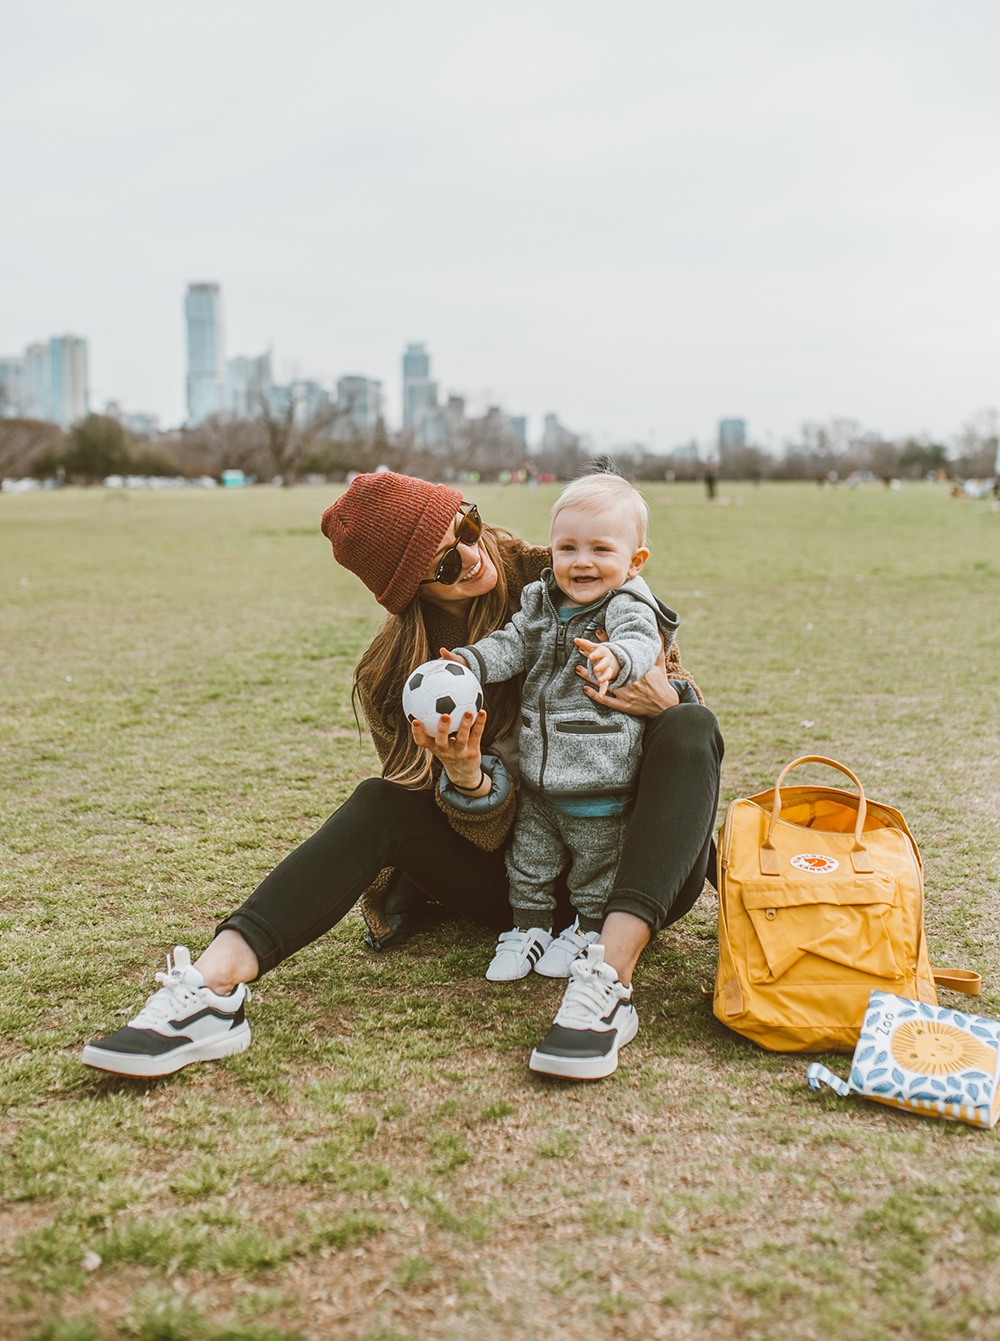 livvyland-blog-olivia-watson-austin-texas-lifestyle-fashion-blogger-zilker-park-vans-ultrarange-rapidweld-sneakers-patagonia-divided-sky-jacket-6